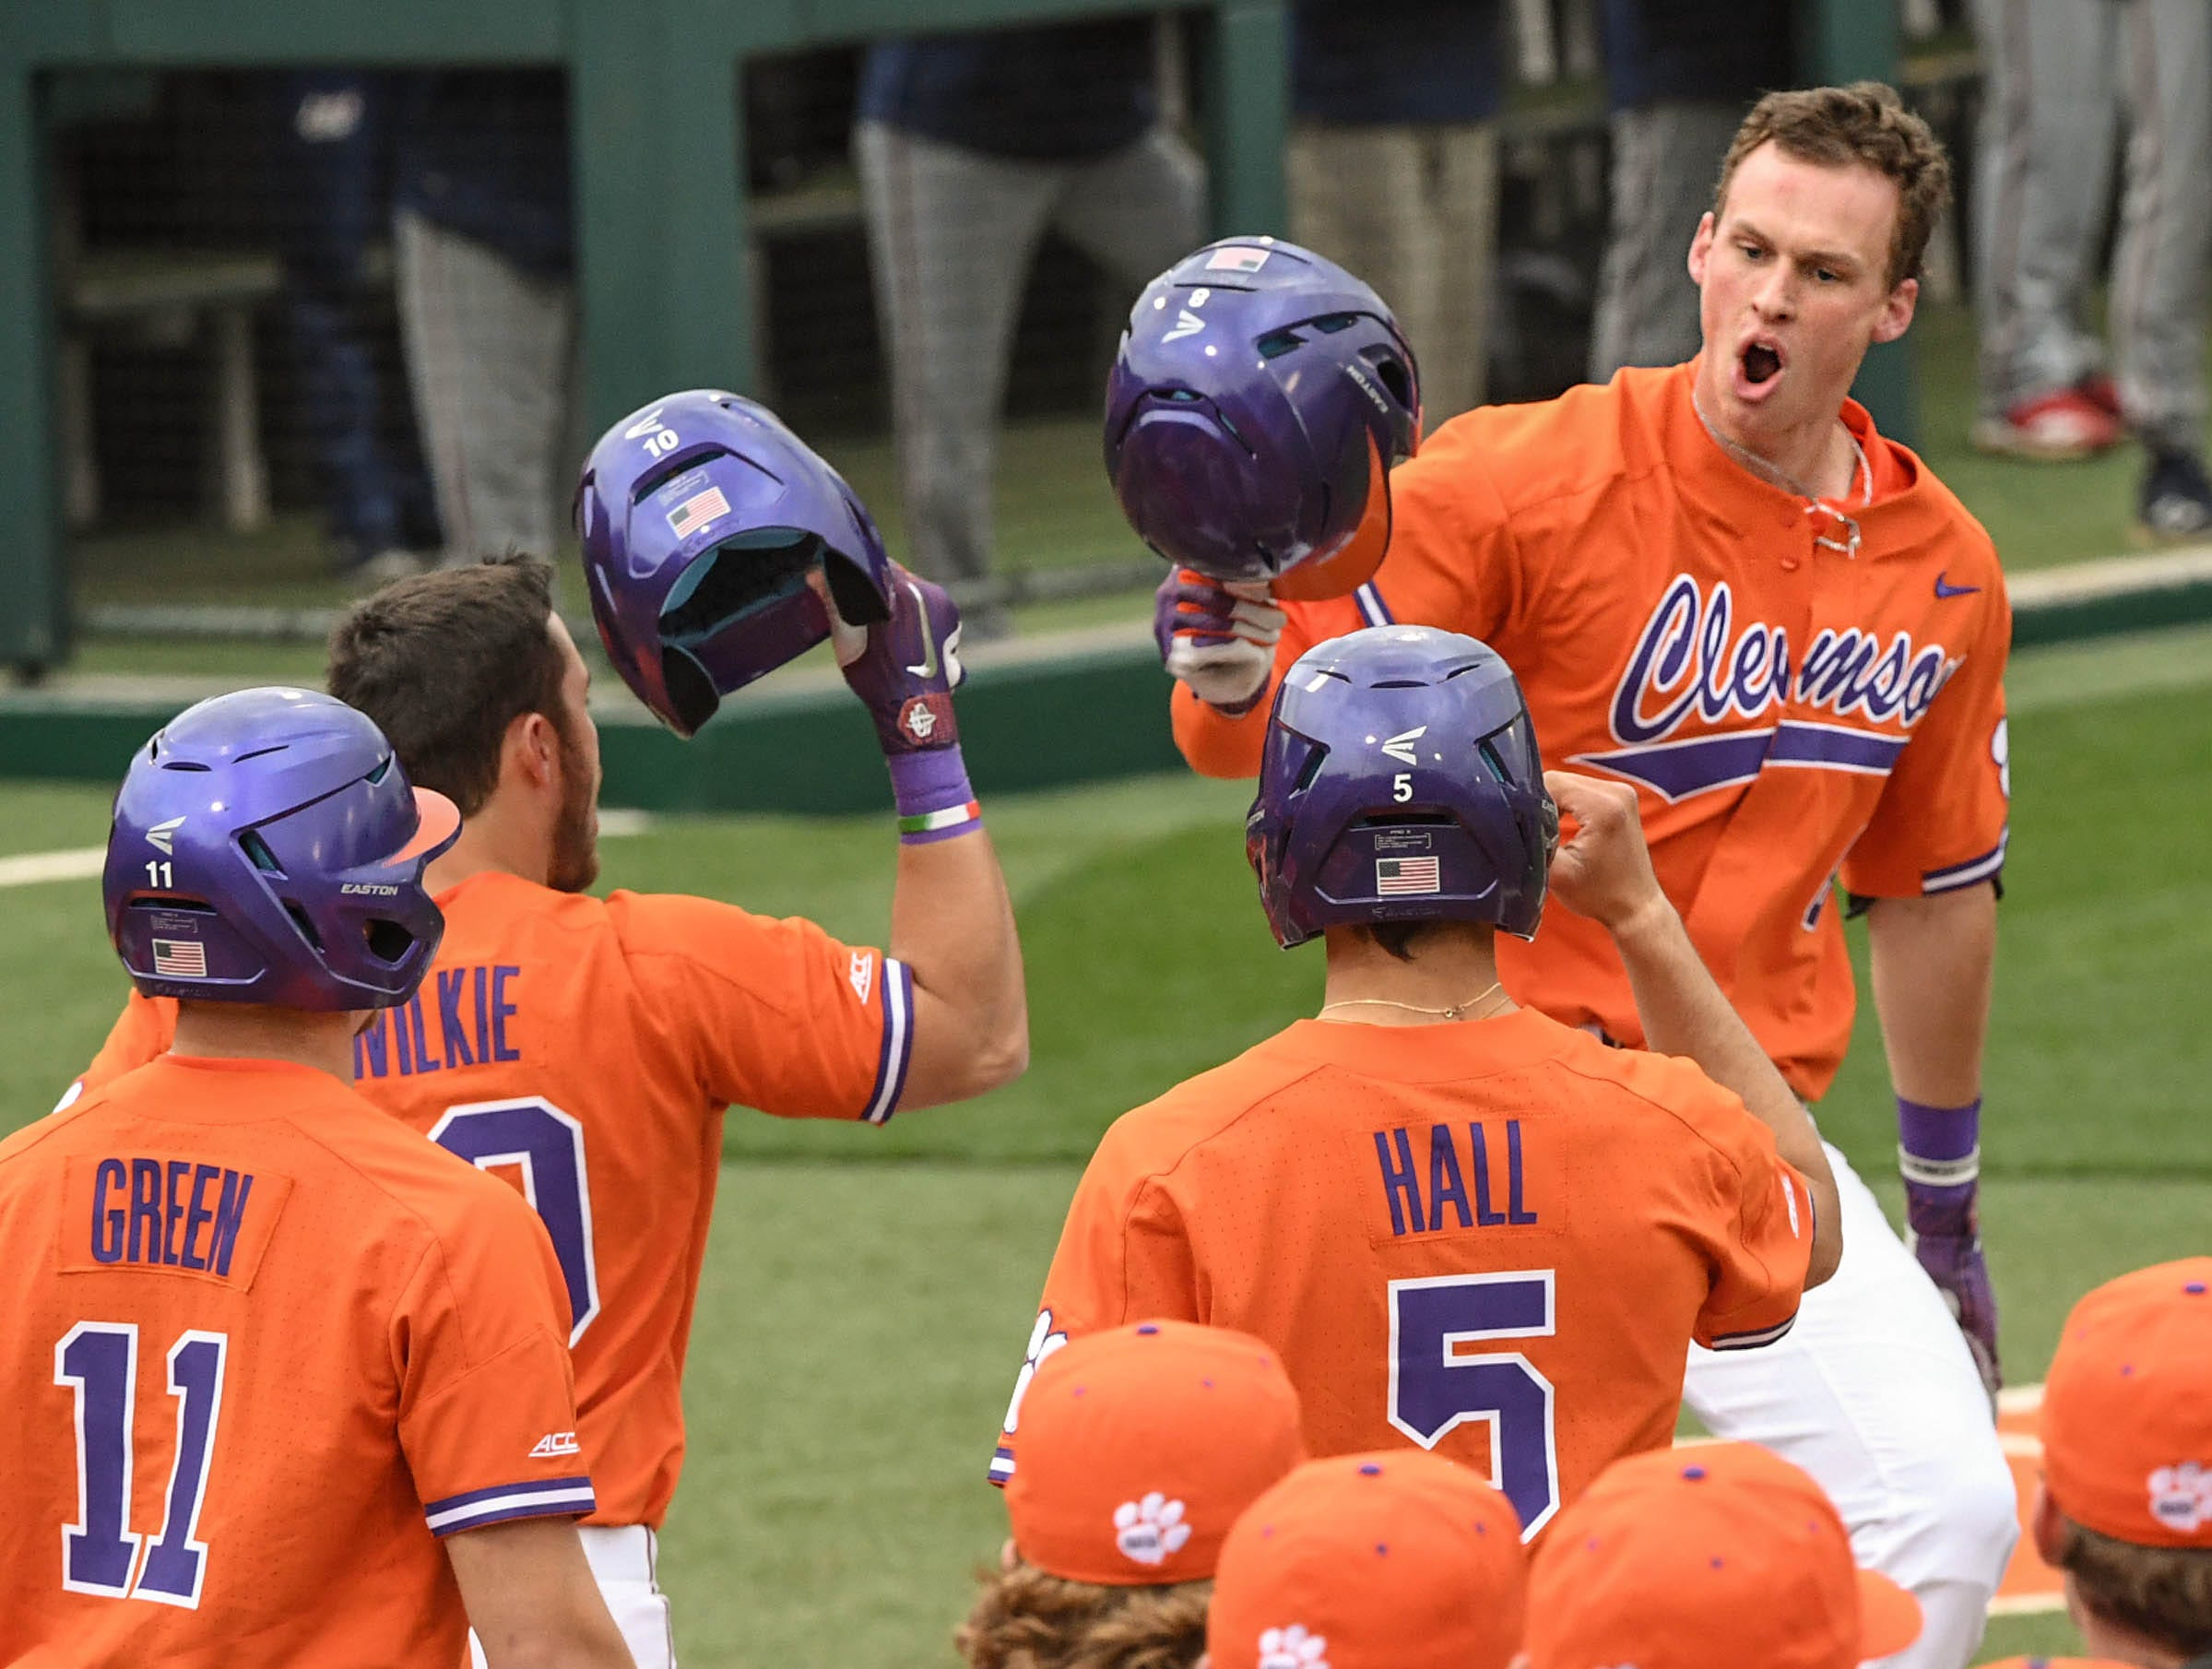 Clemson junior Logan Davidson(8) is congratulated by teammates after he hit a three-run home run against South Alabama during the bottom of the fifth inning at Doug Kingsmore Stadium in Clemson Friday, February 15, 2019.